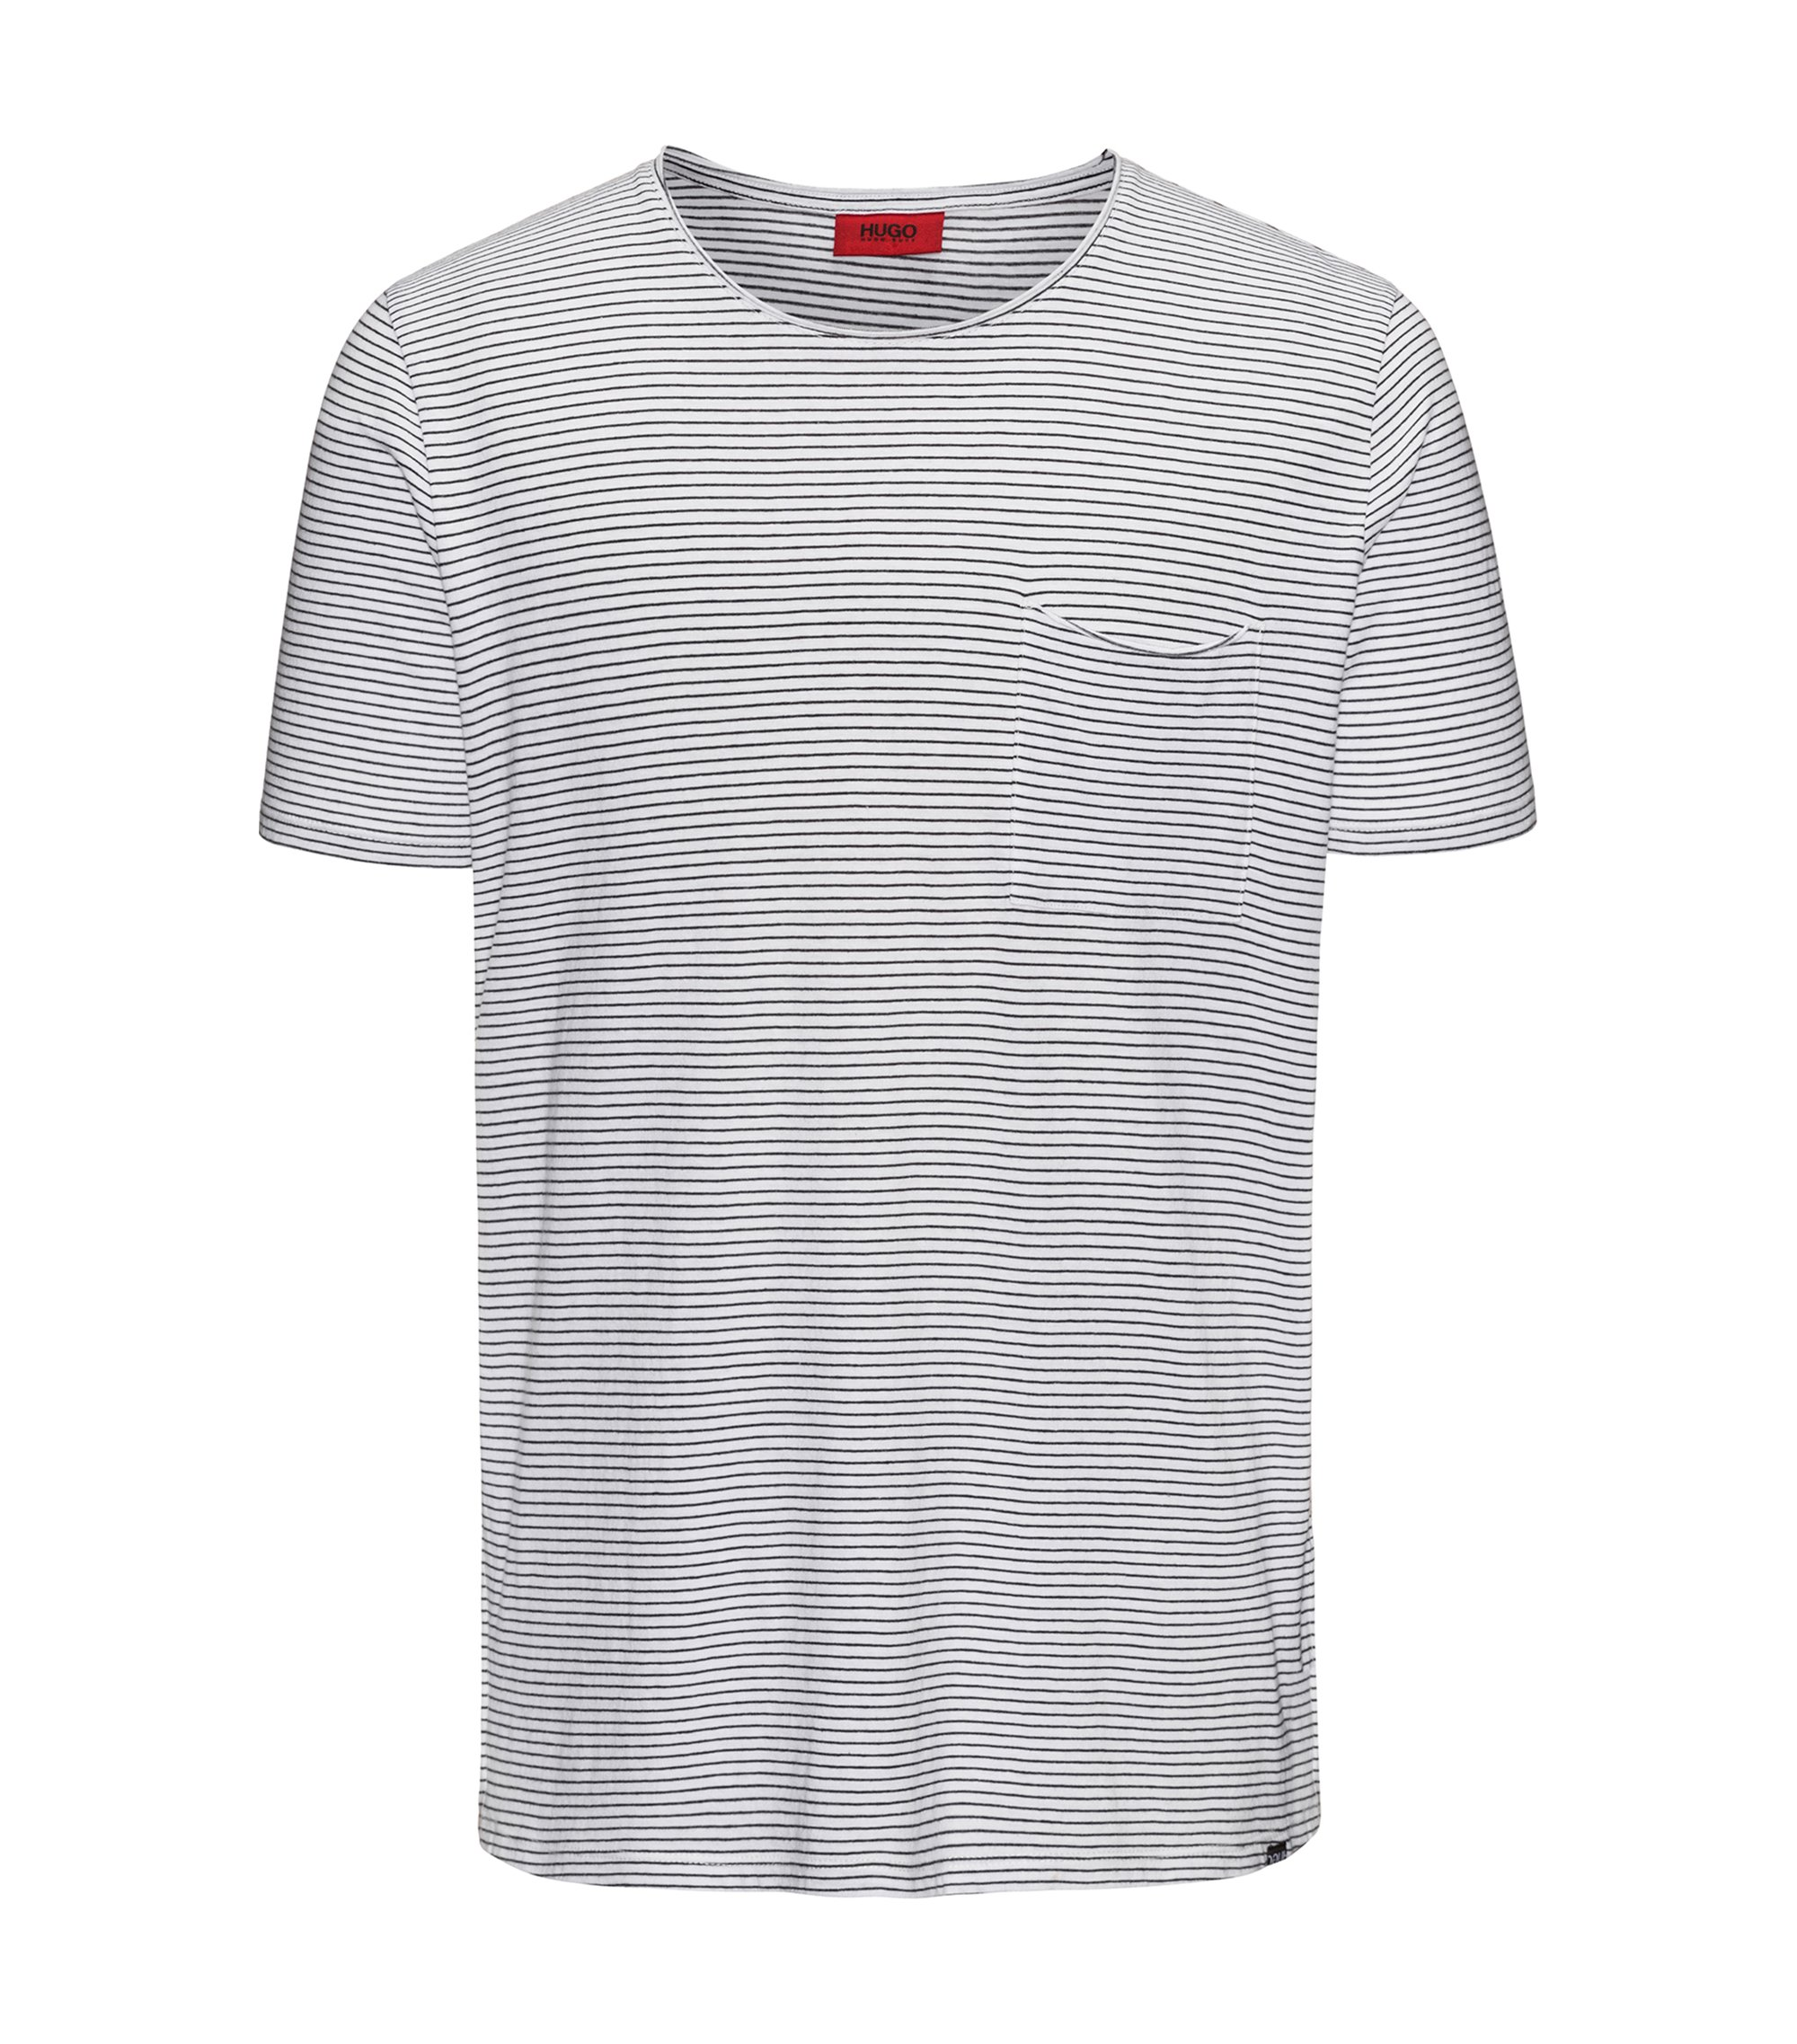 Striped cotton-blend T-shirt in a relaxed fit, White